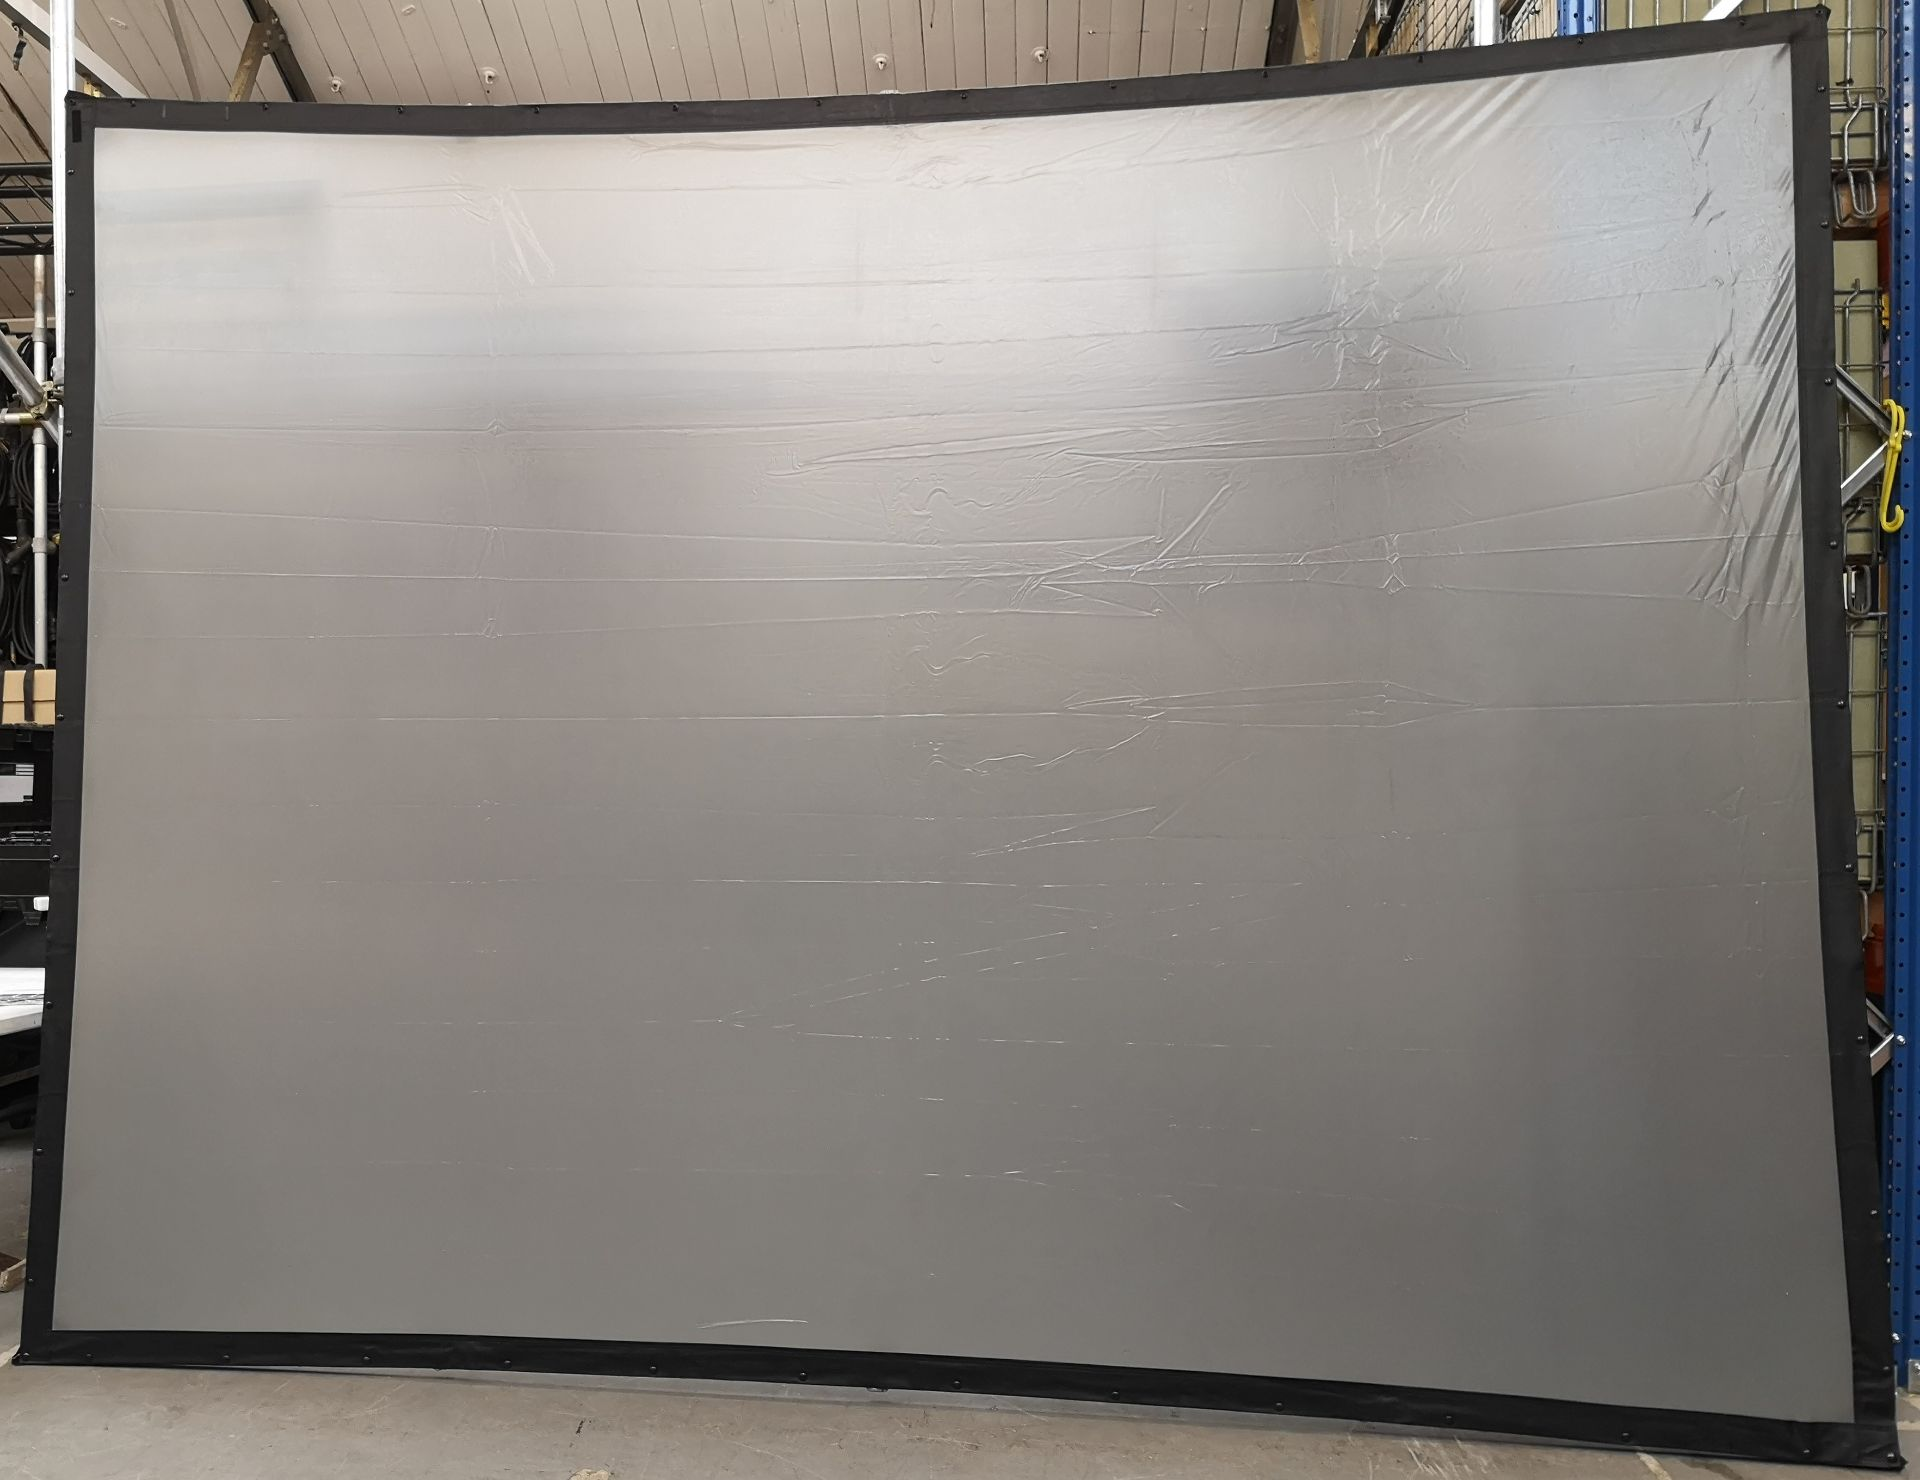 A DA-LITE 12ft x 9ft Rear Projection Fastfold Screen with frame, legs, bolts, screen surface, bag - Image 5 of 10